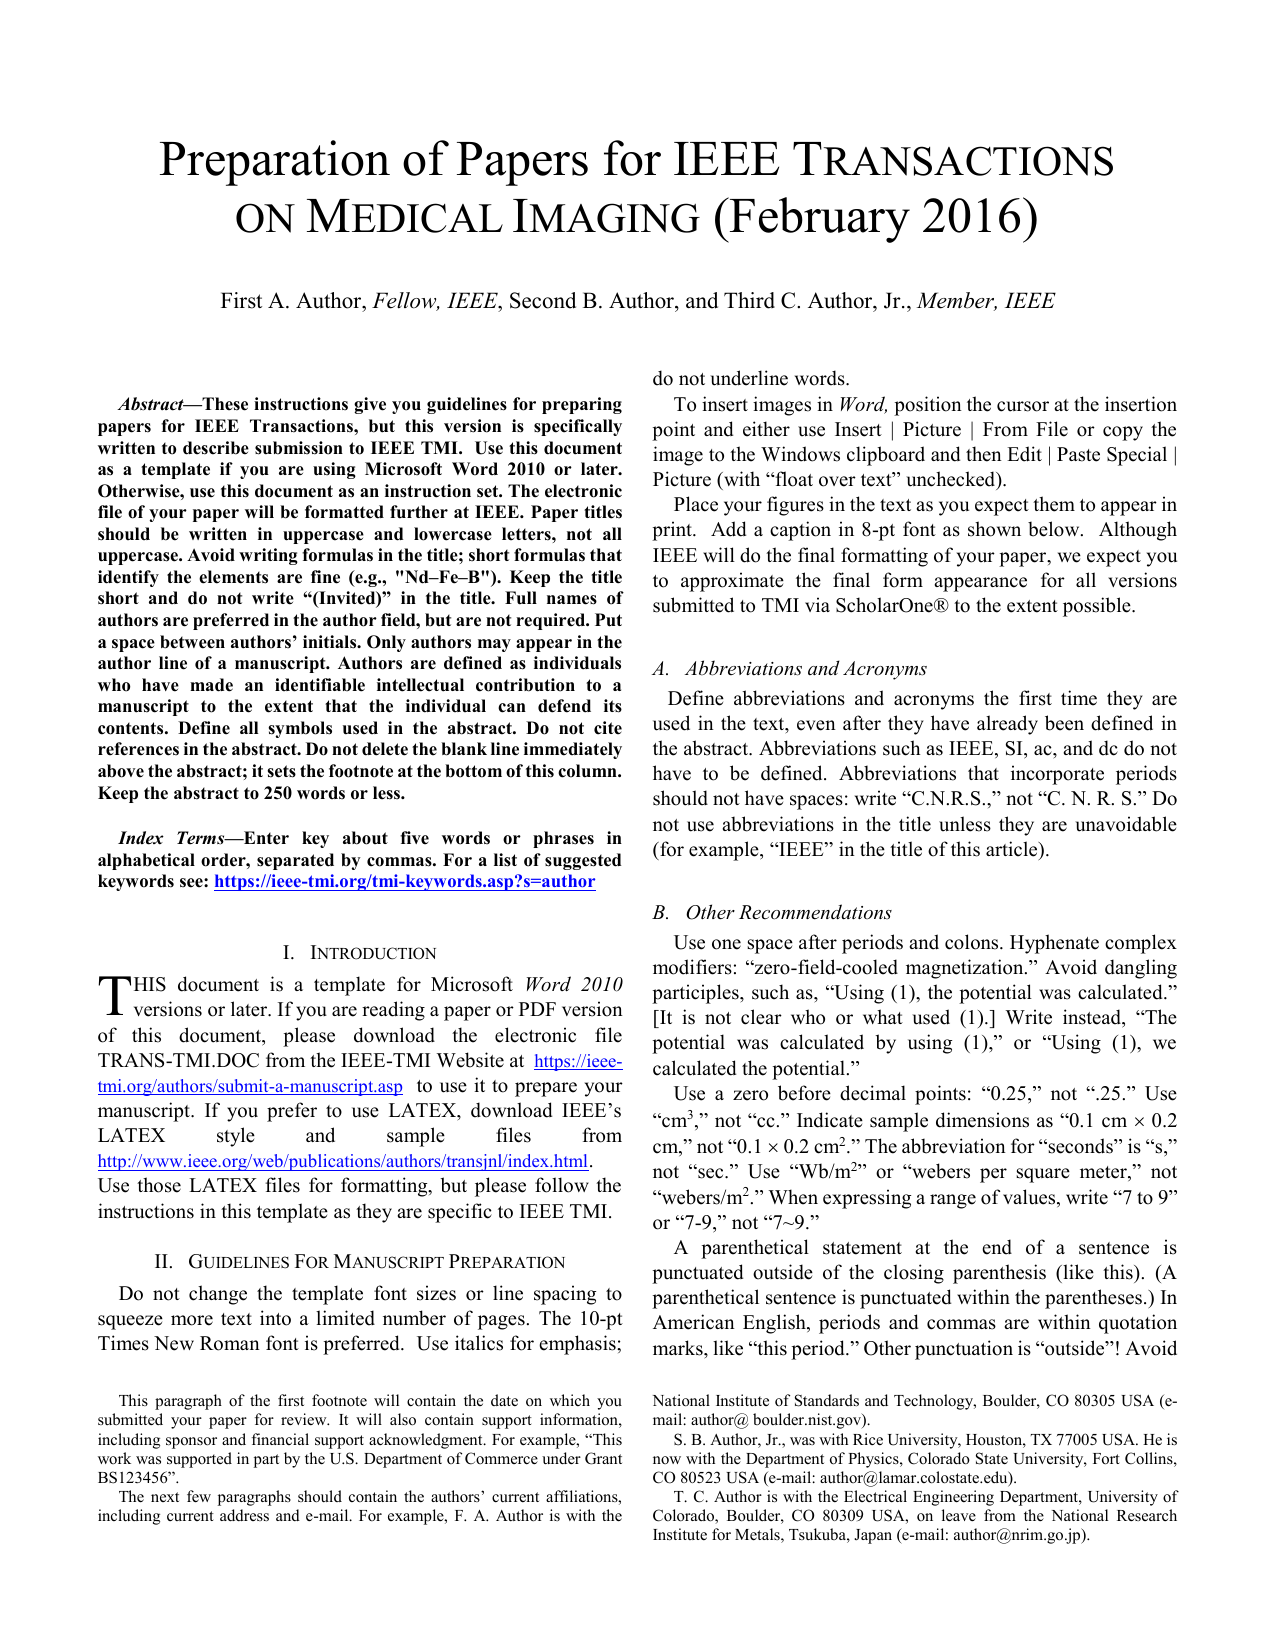 TMI Word style guide template - IEEE Transactions on Medical